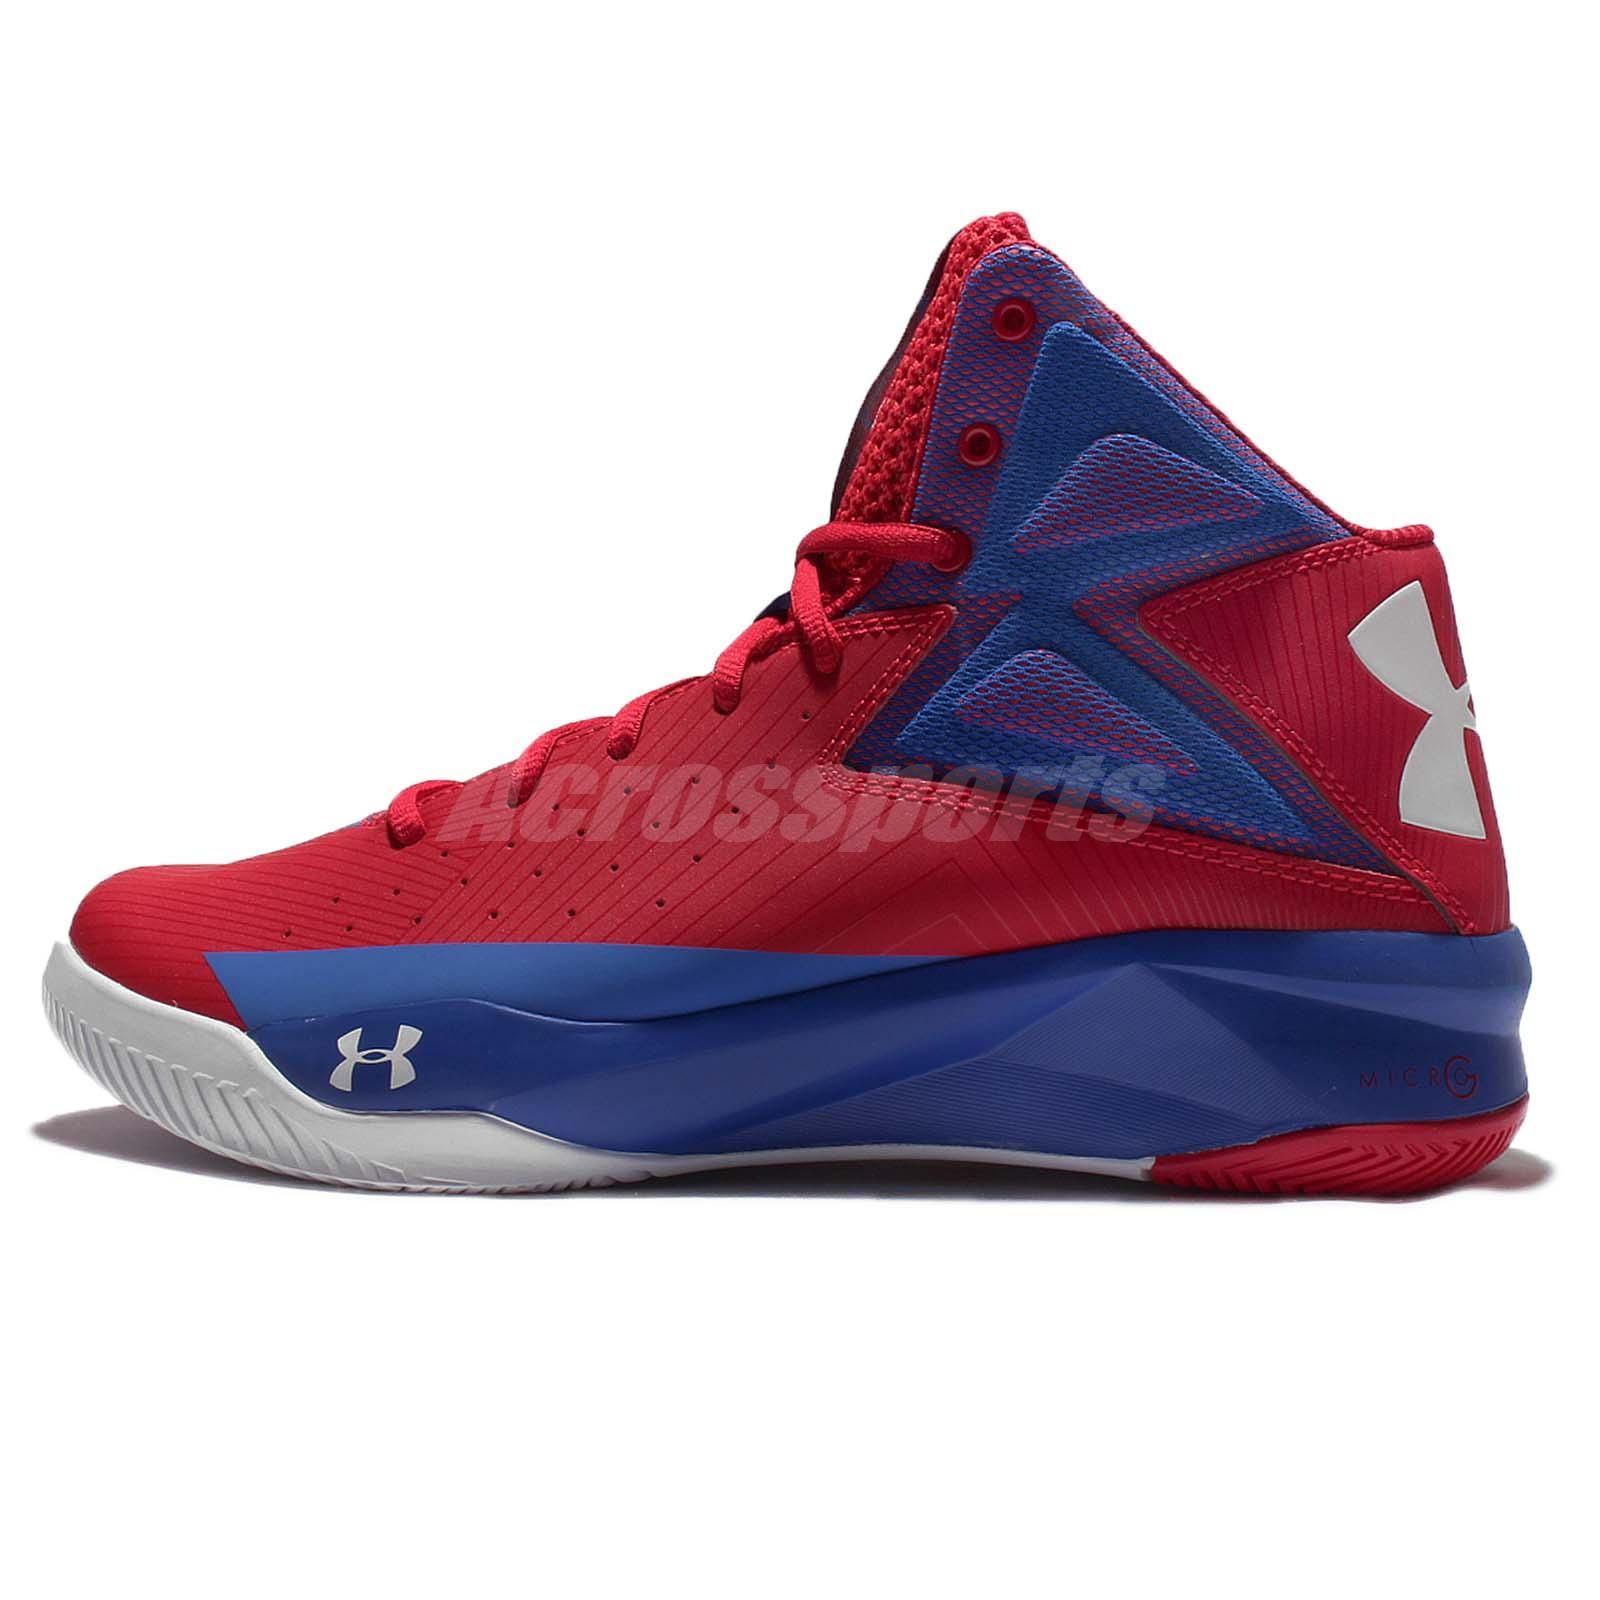 7700c897ef811 under armor high top basketball shoes cheap   OFF53% The Largest ...